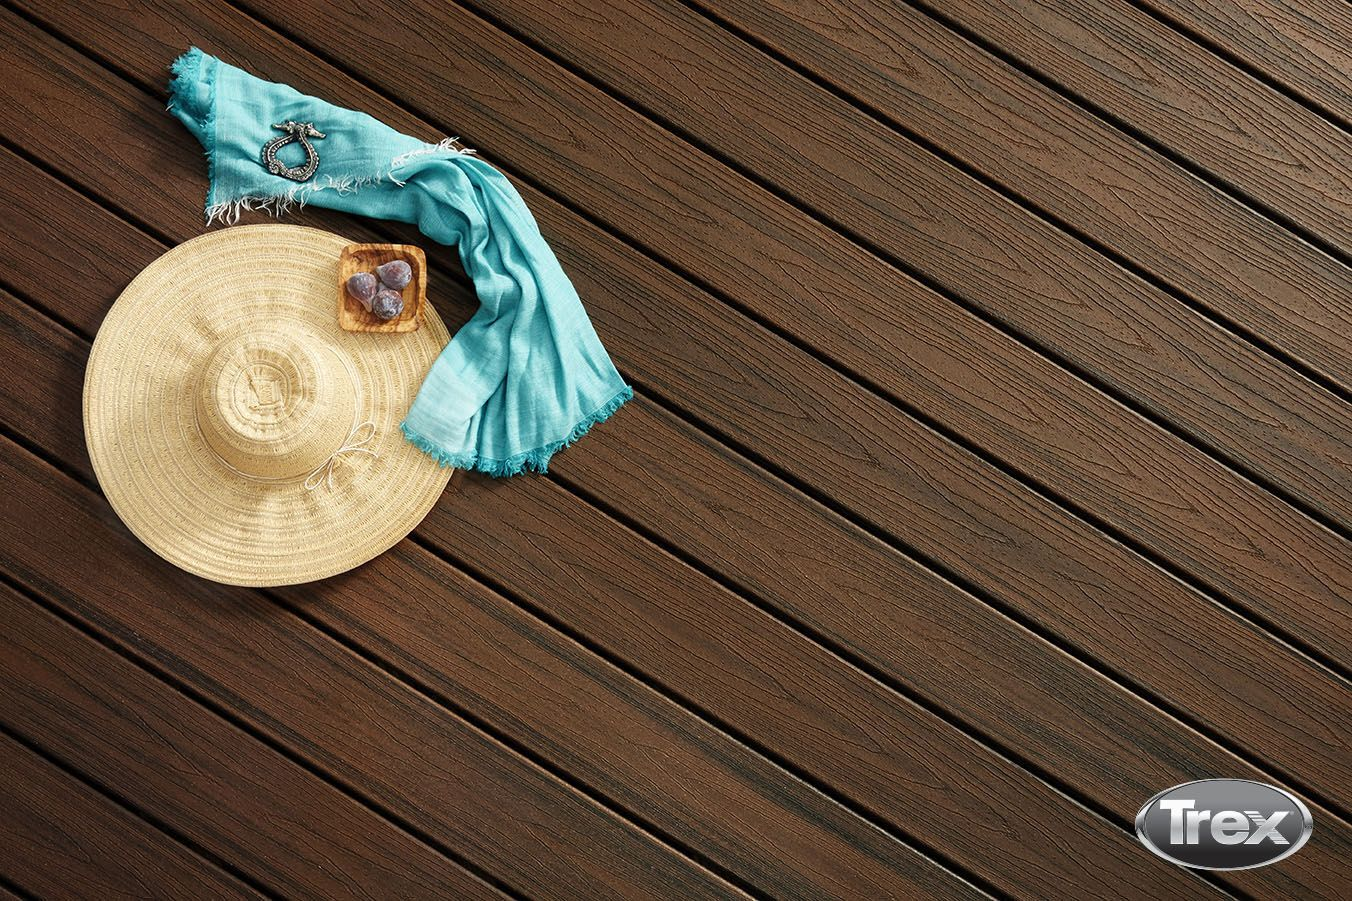 Debating over island mist or gravel path cant choose between discover the right trex deck board style and color for you order trex composite decking samples to find the perfect match for your home nvjuhfo Gallery